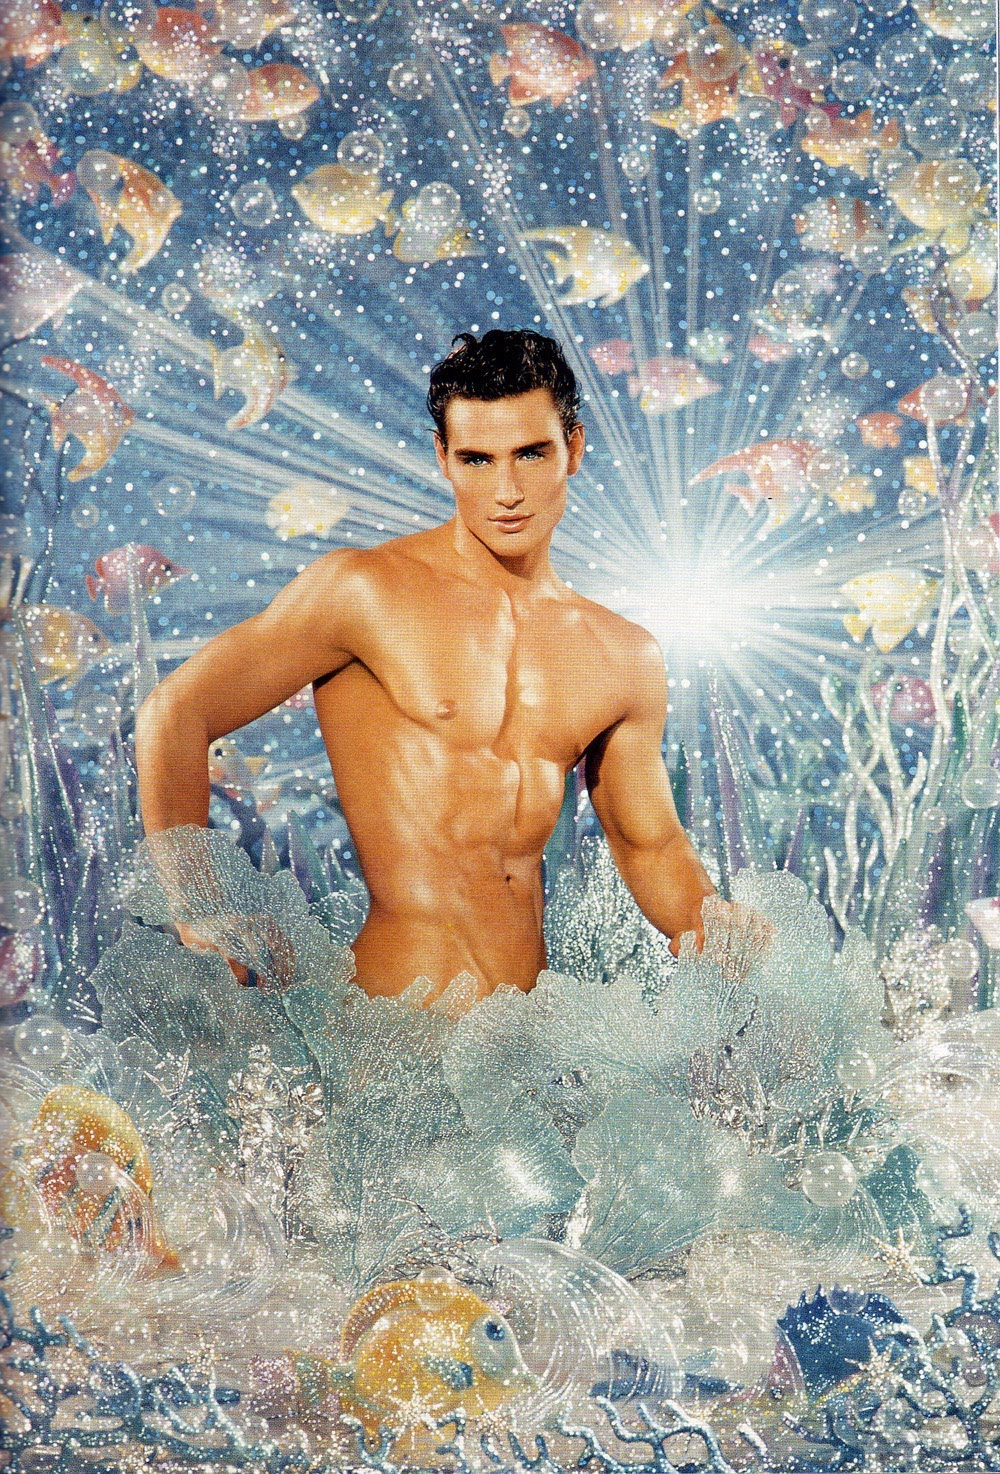 westward the course of empire takes its way pierre et gilles. Black Bedroom Furniture Sets. Home Design Ideas